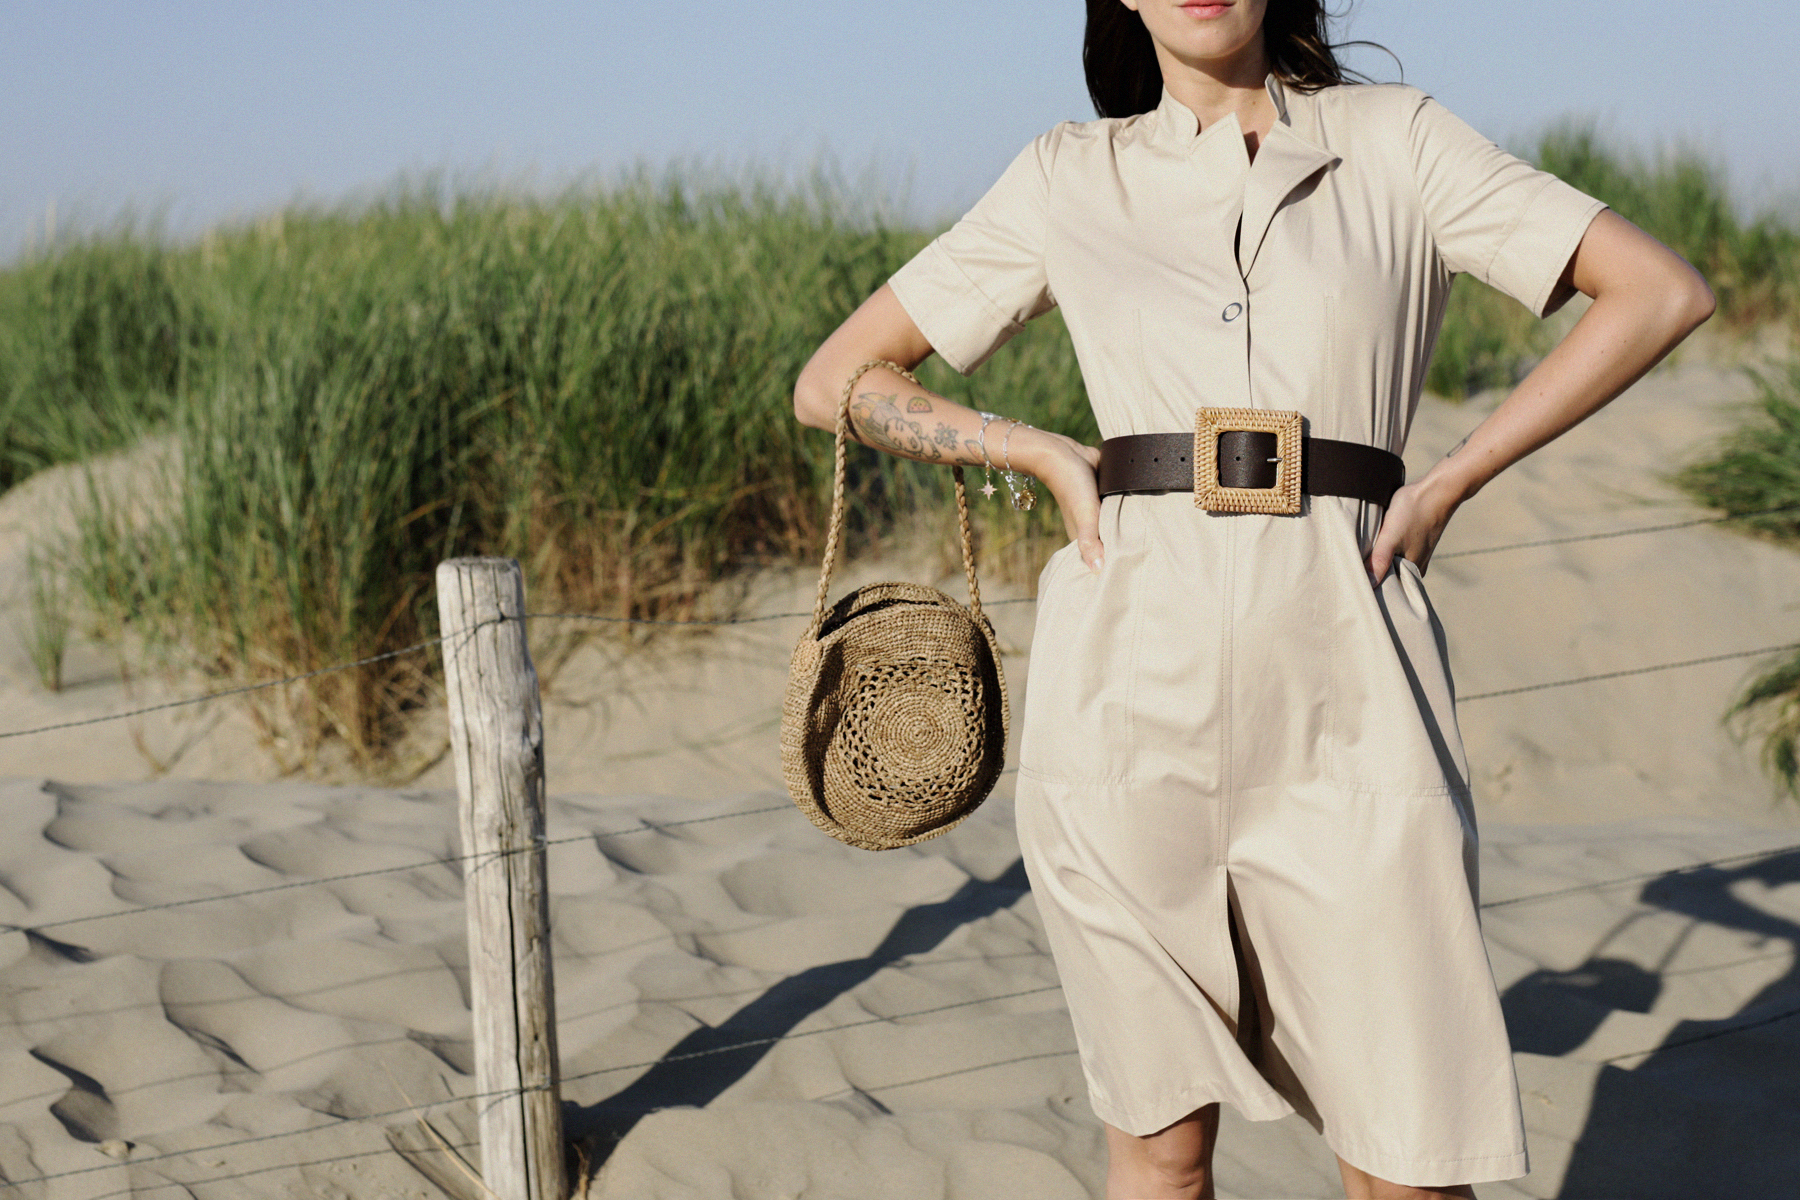 beach holland bloemendaal safari city dress outfit couple coupleblog couplegoals couplestyle romance love vintage style inspo inspiration black and white photography dusseldorf catsanddogsblog ricarda schernus modeblogger styleblog max bechmann fotograf 3